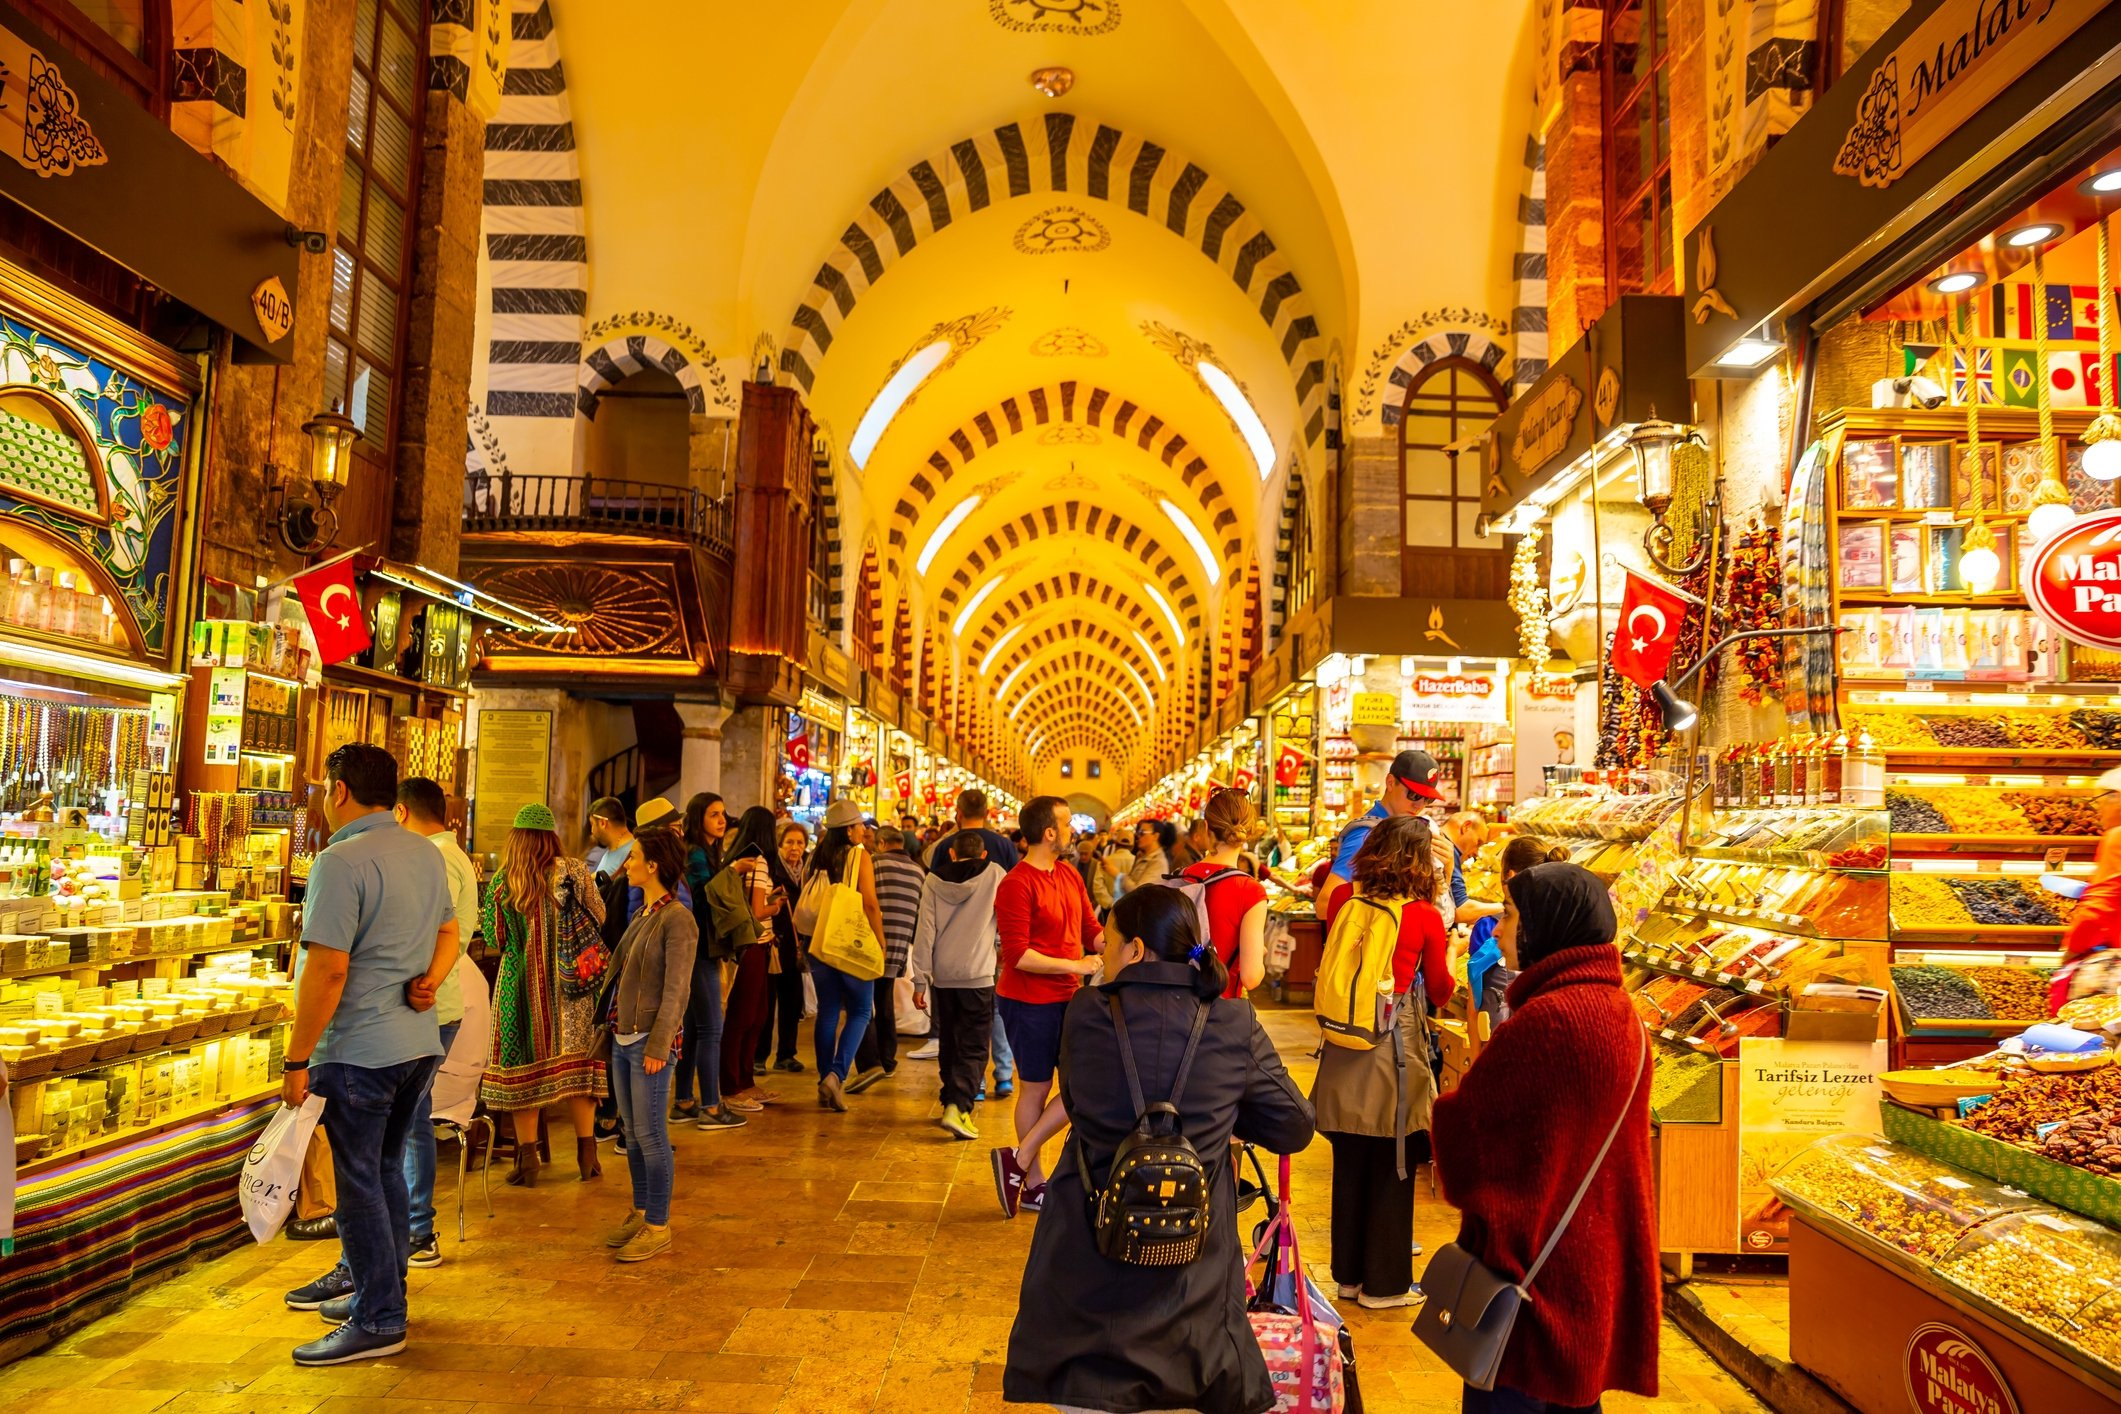 The famous Spice Bazaar in Istanbul was built to satisfy the needs of the Yeni Mosque with its rental income. (Subodh Agnihotri / iStock Photo)